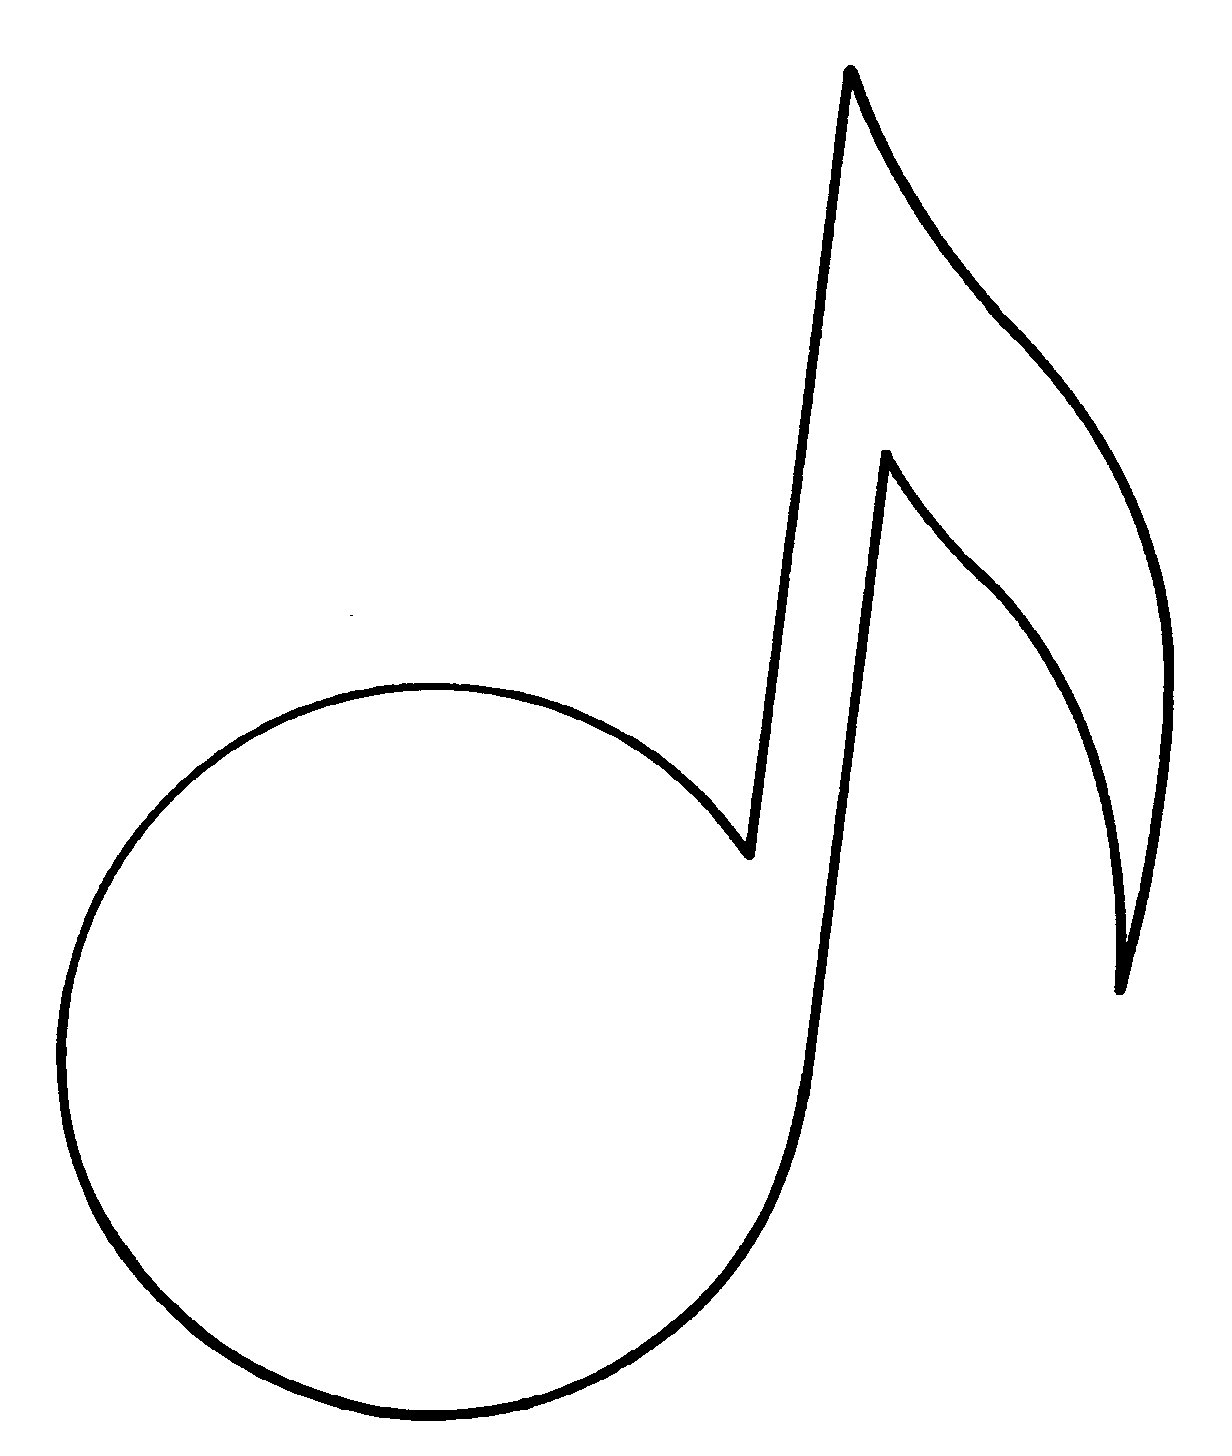 Free Music Note Outline Download Free Clip Art Free Clip Art On Clipart Library